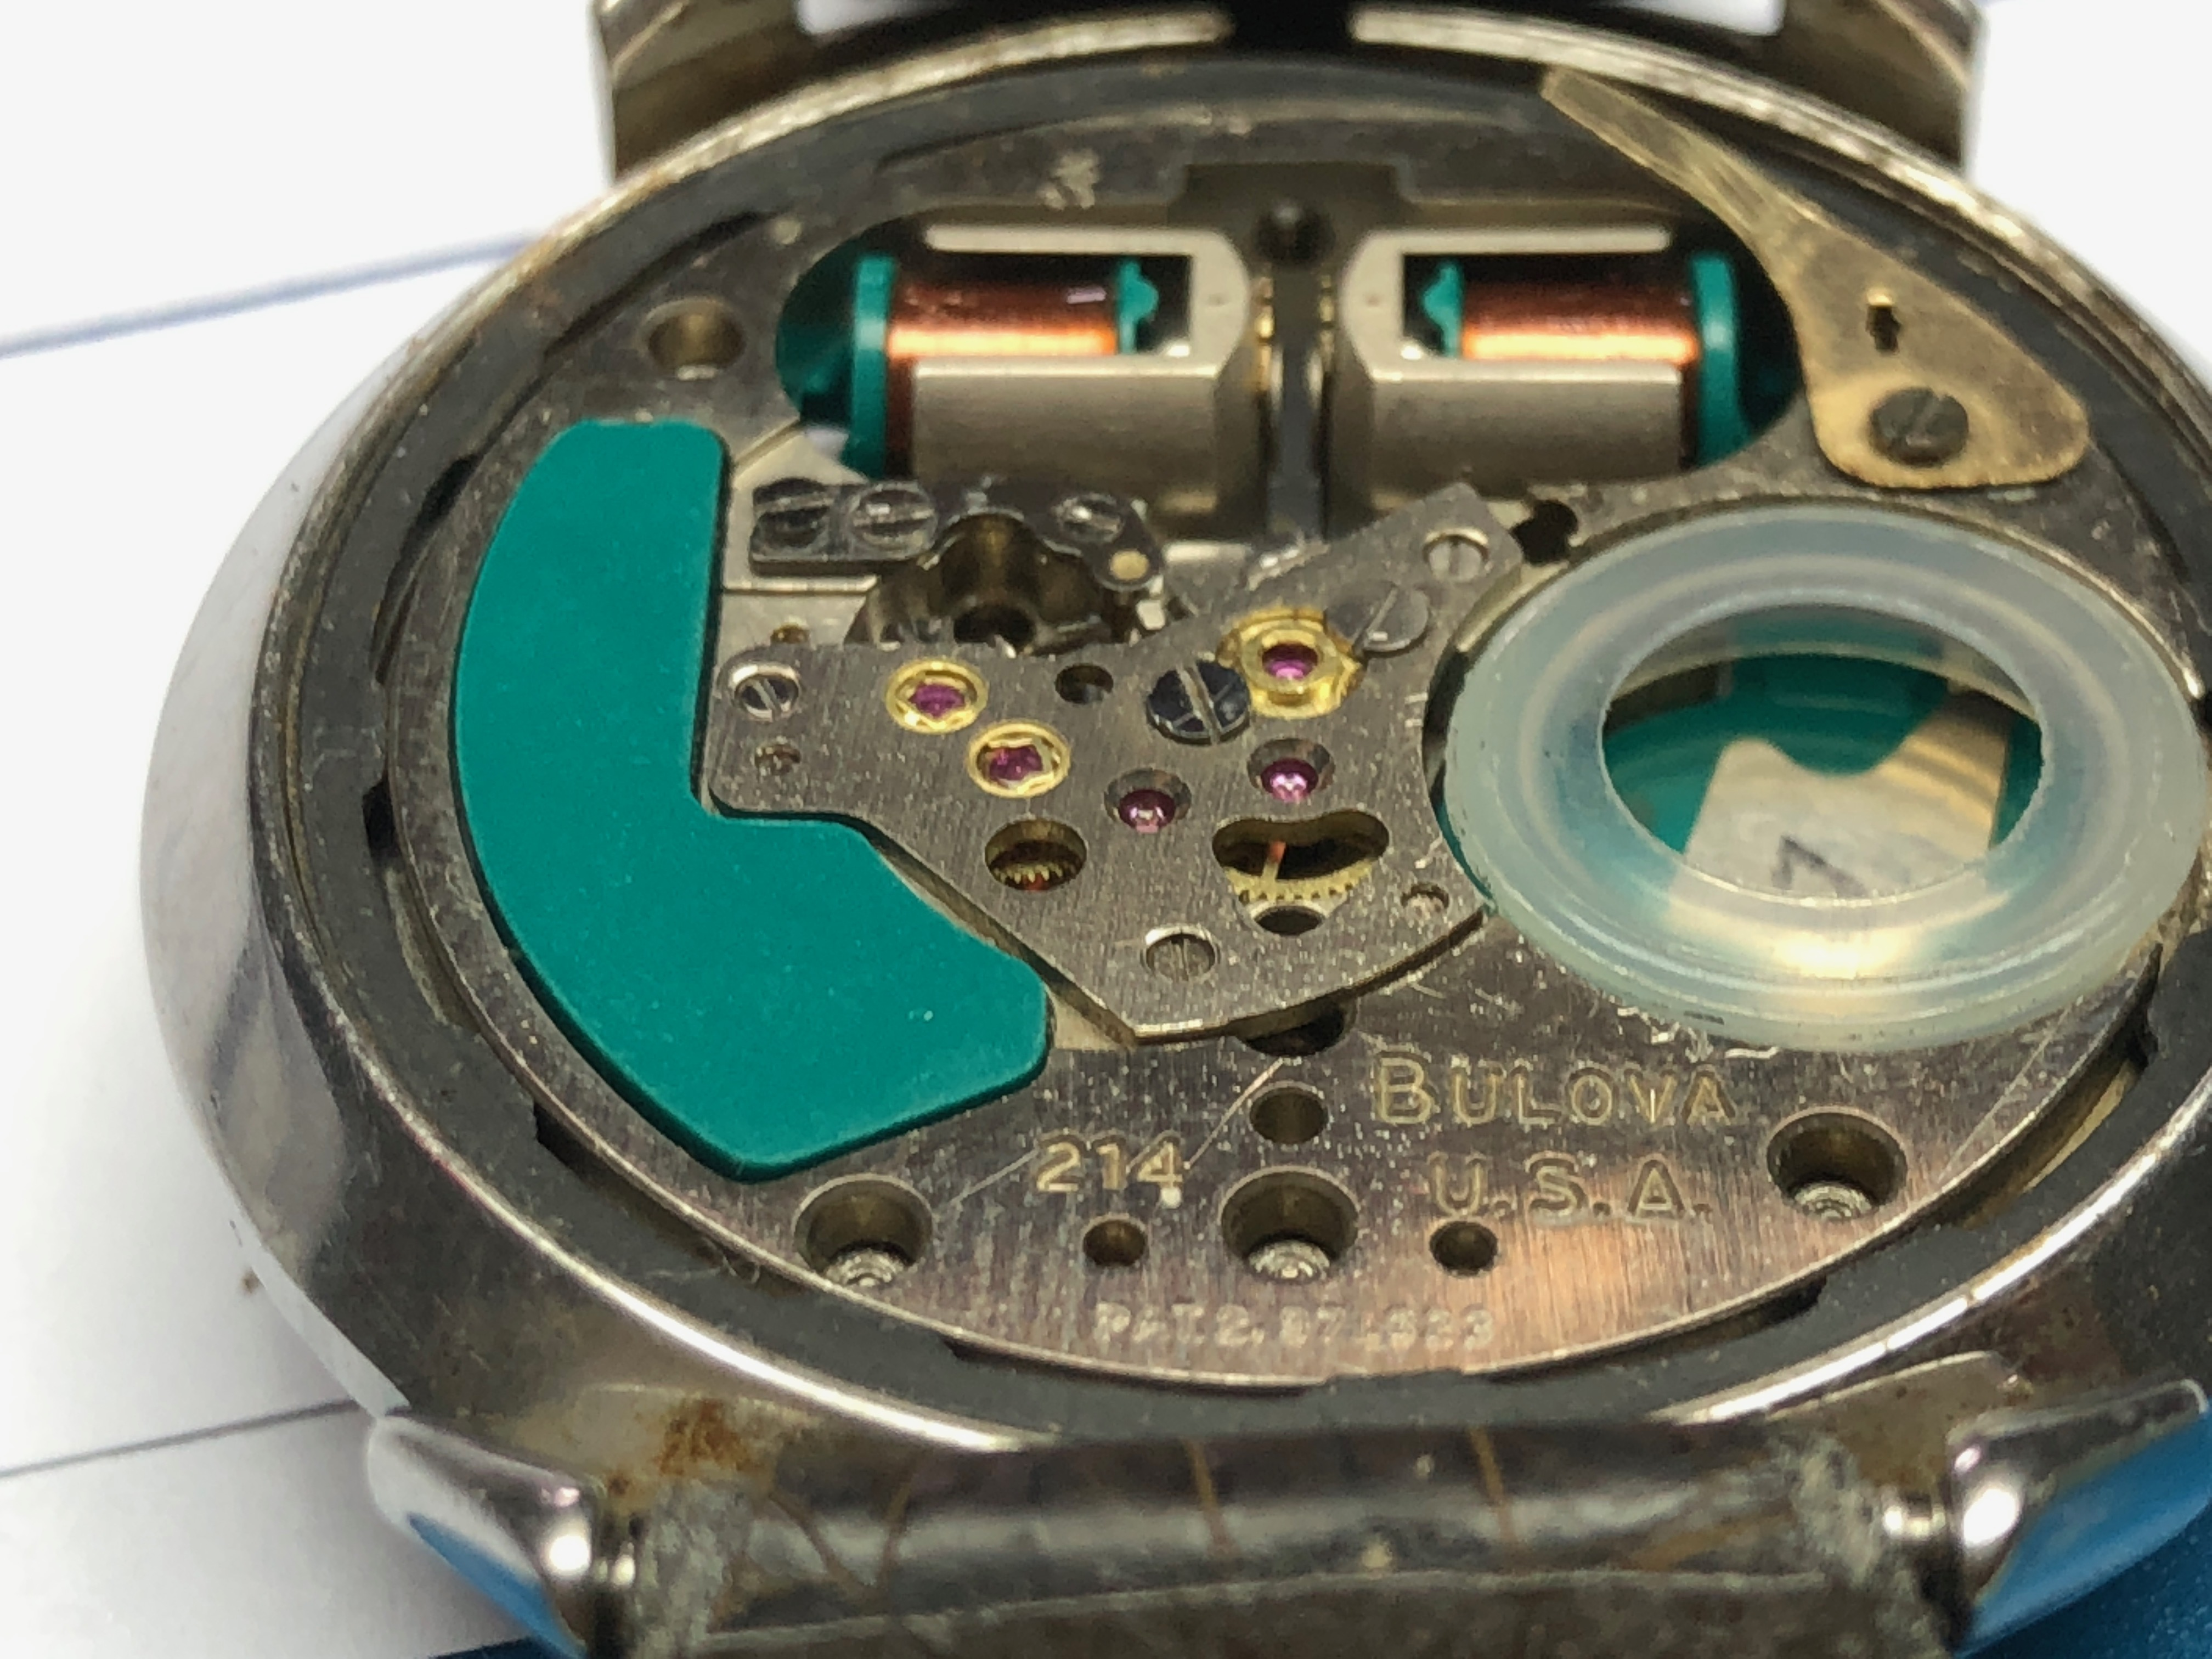 Accutron Hobbyist Repair Butchered Watches